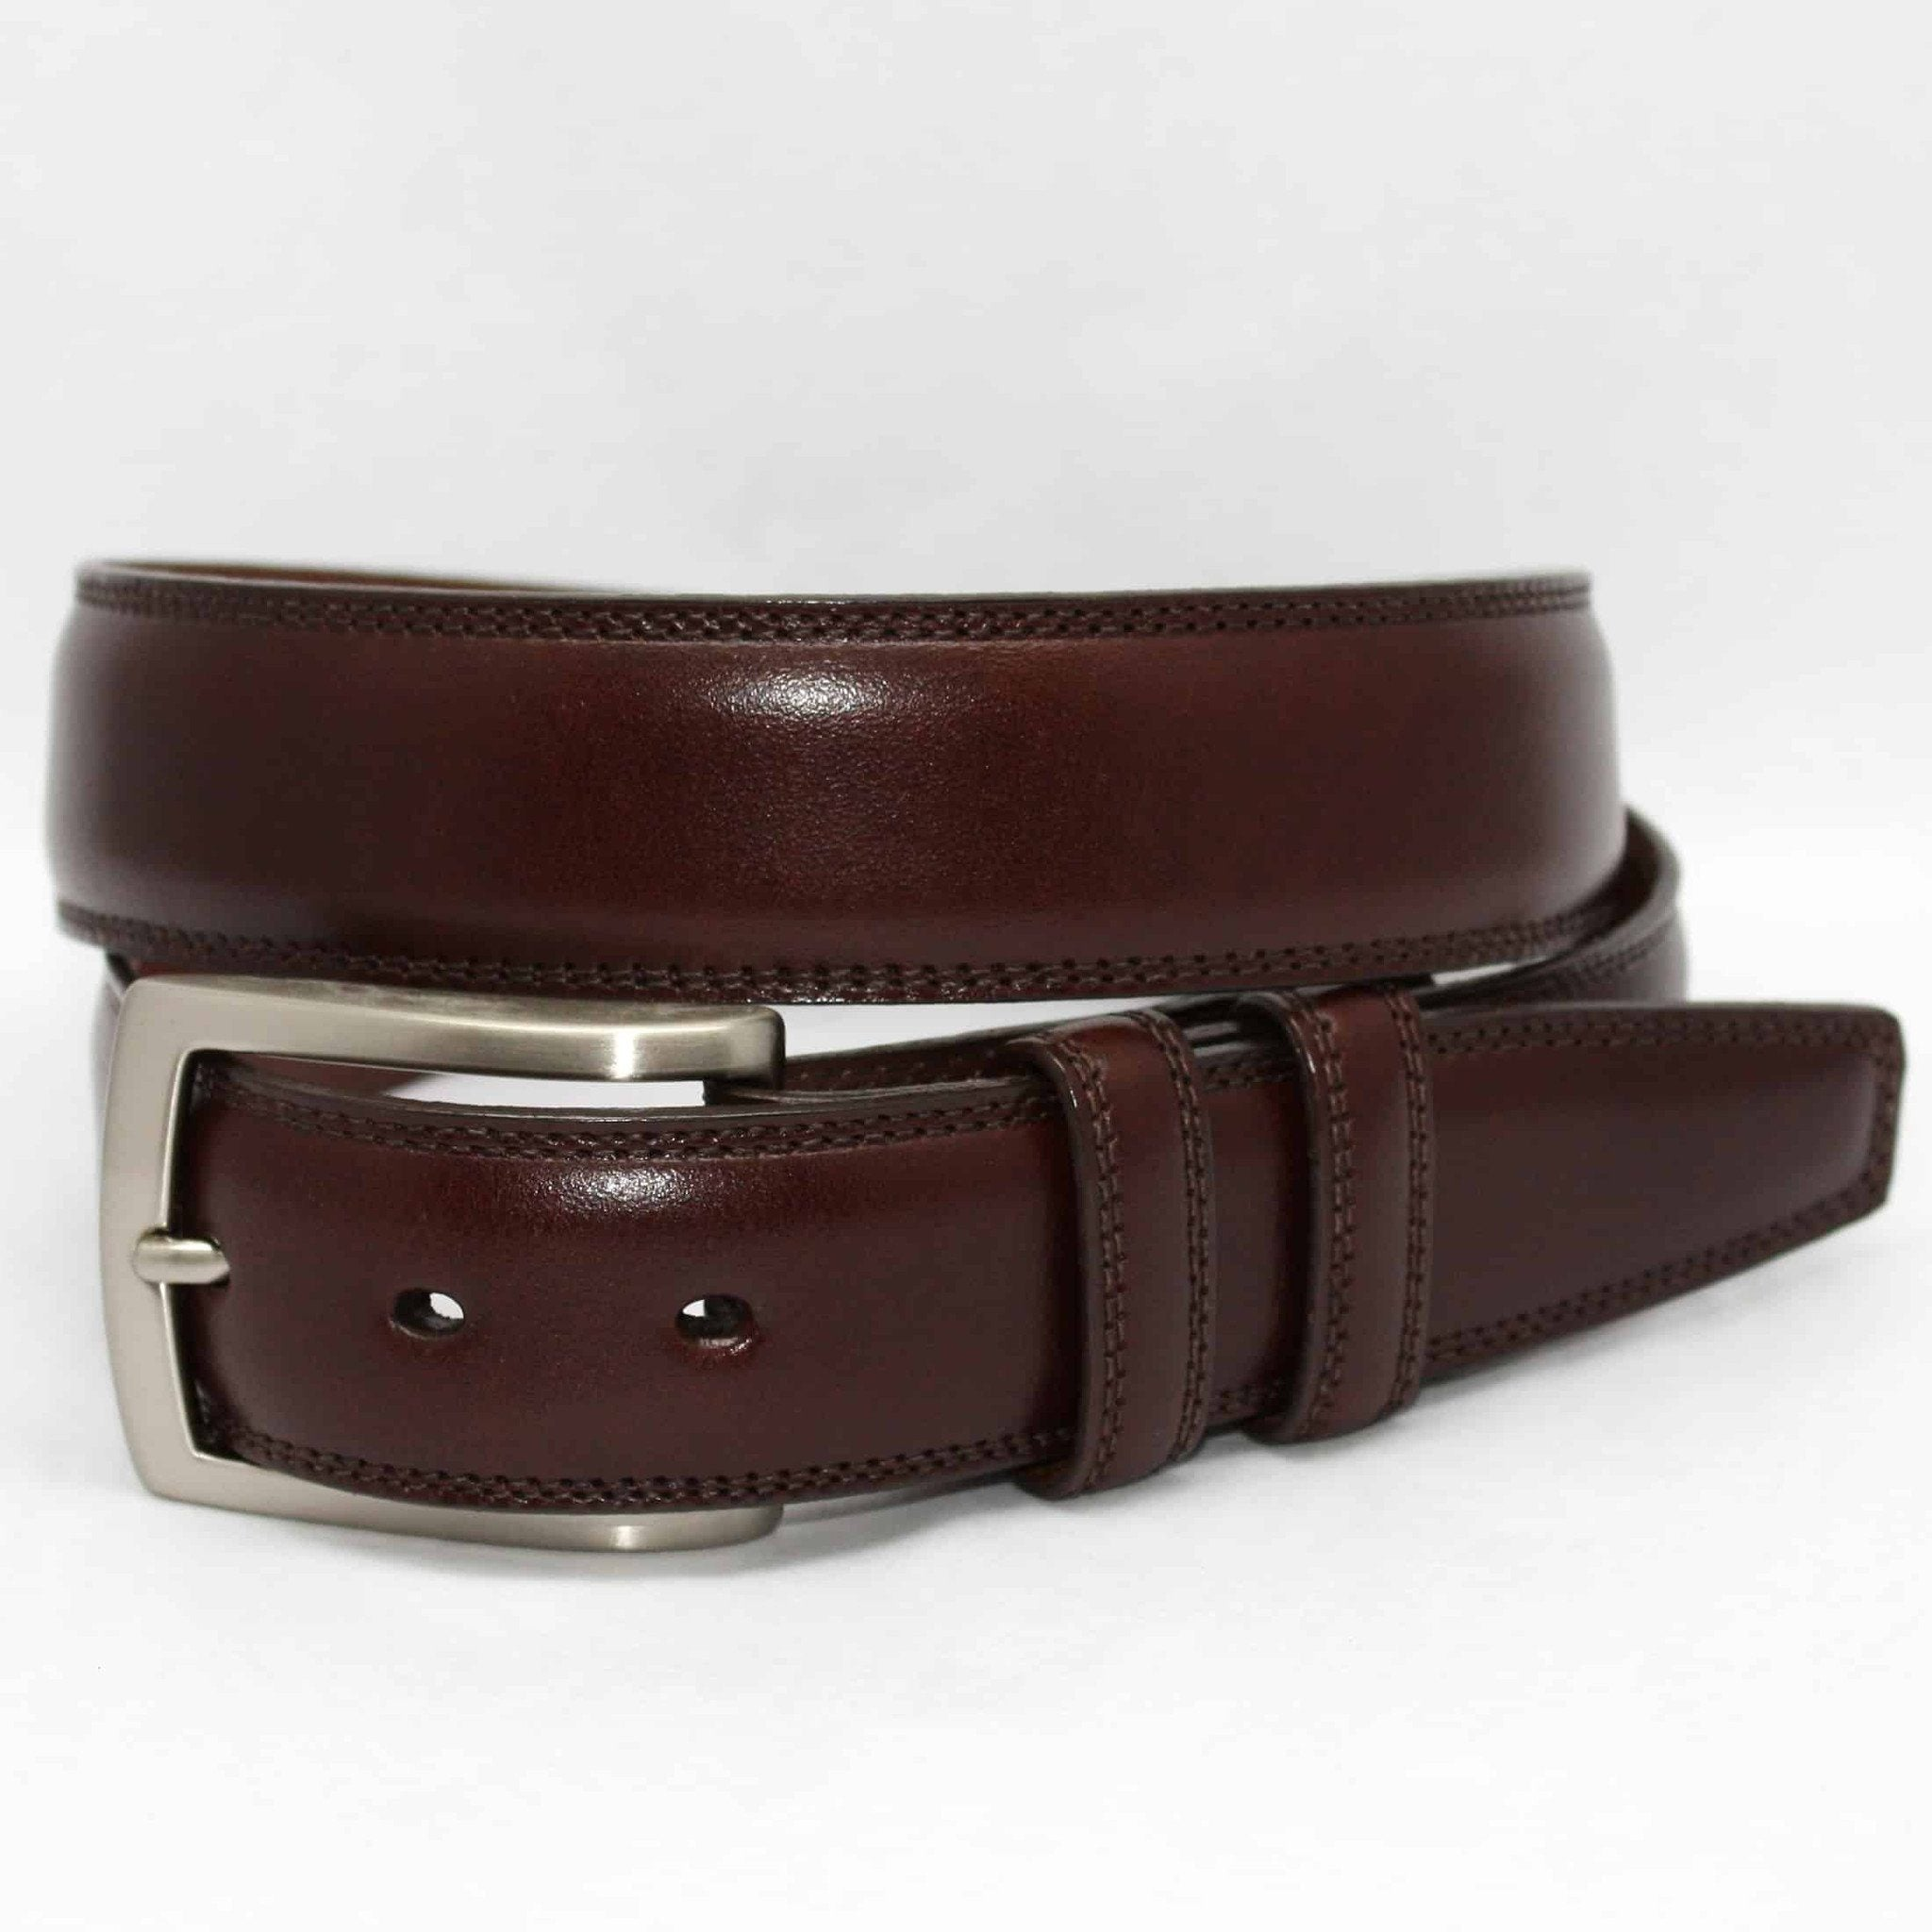 X-LONG Italian Burnished Kipskin Belt - Brown,BELT,GentRow.com, | GentRow.com